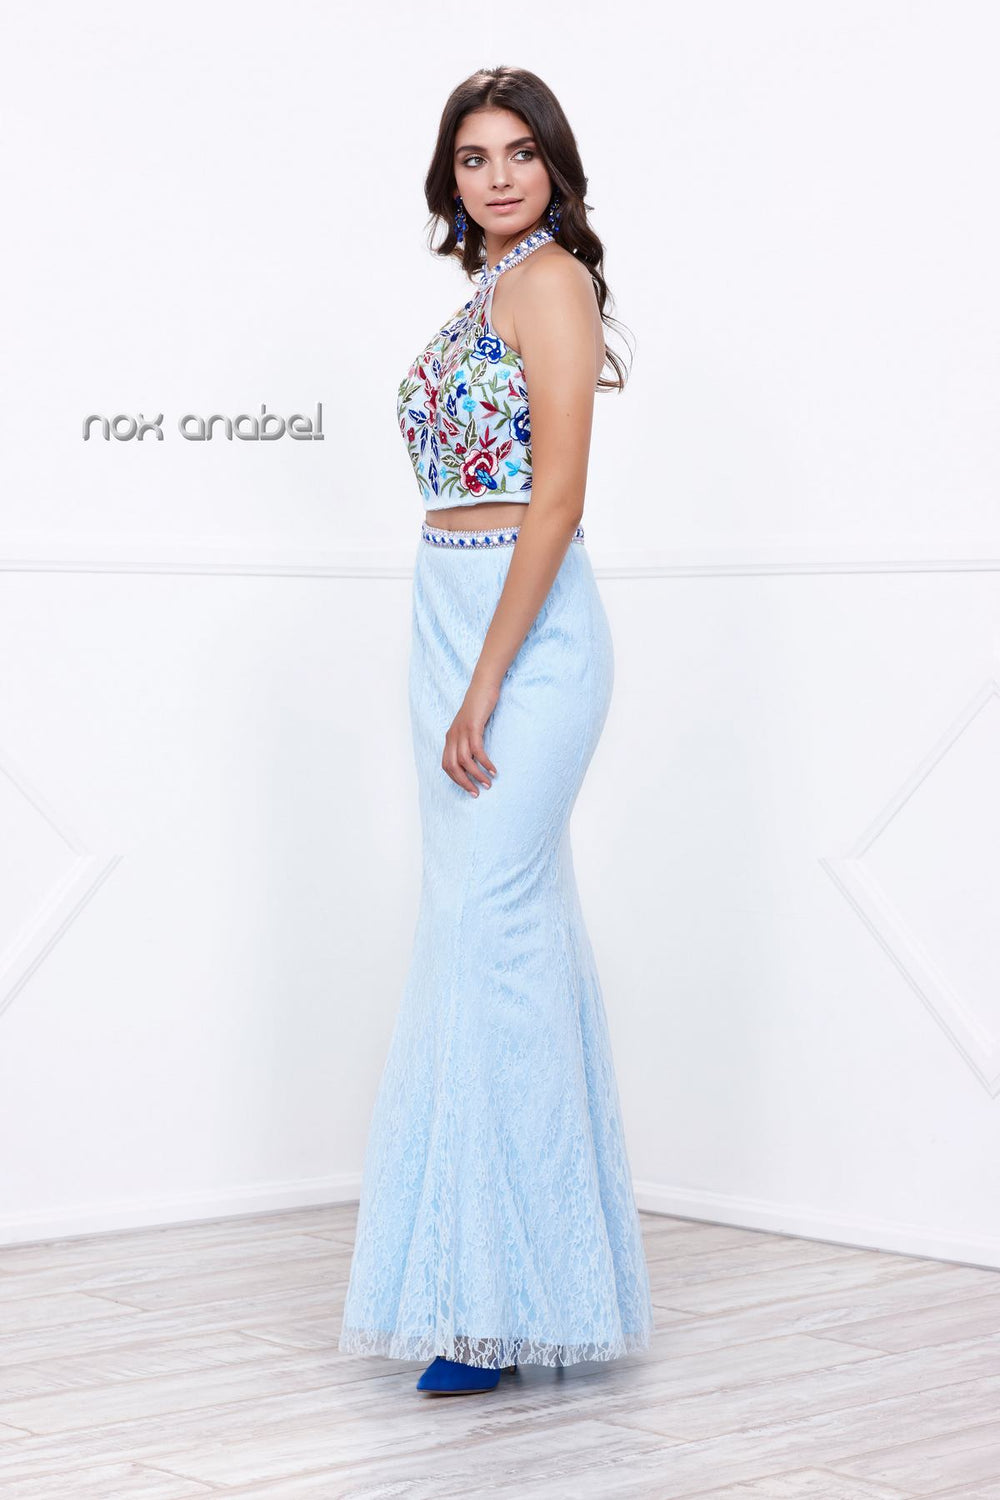 PARTY COCKTAIL TWO PIECE EMBROIDERED LACE MERMAID DRESS 8262 BY NARIANNA